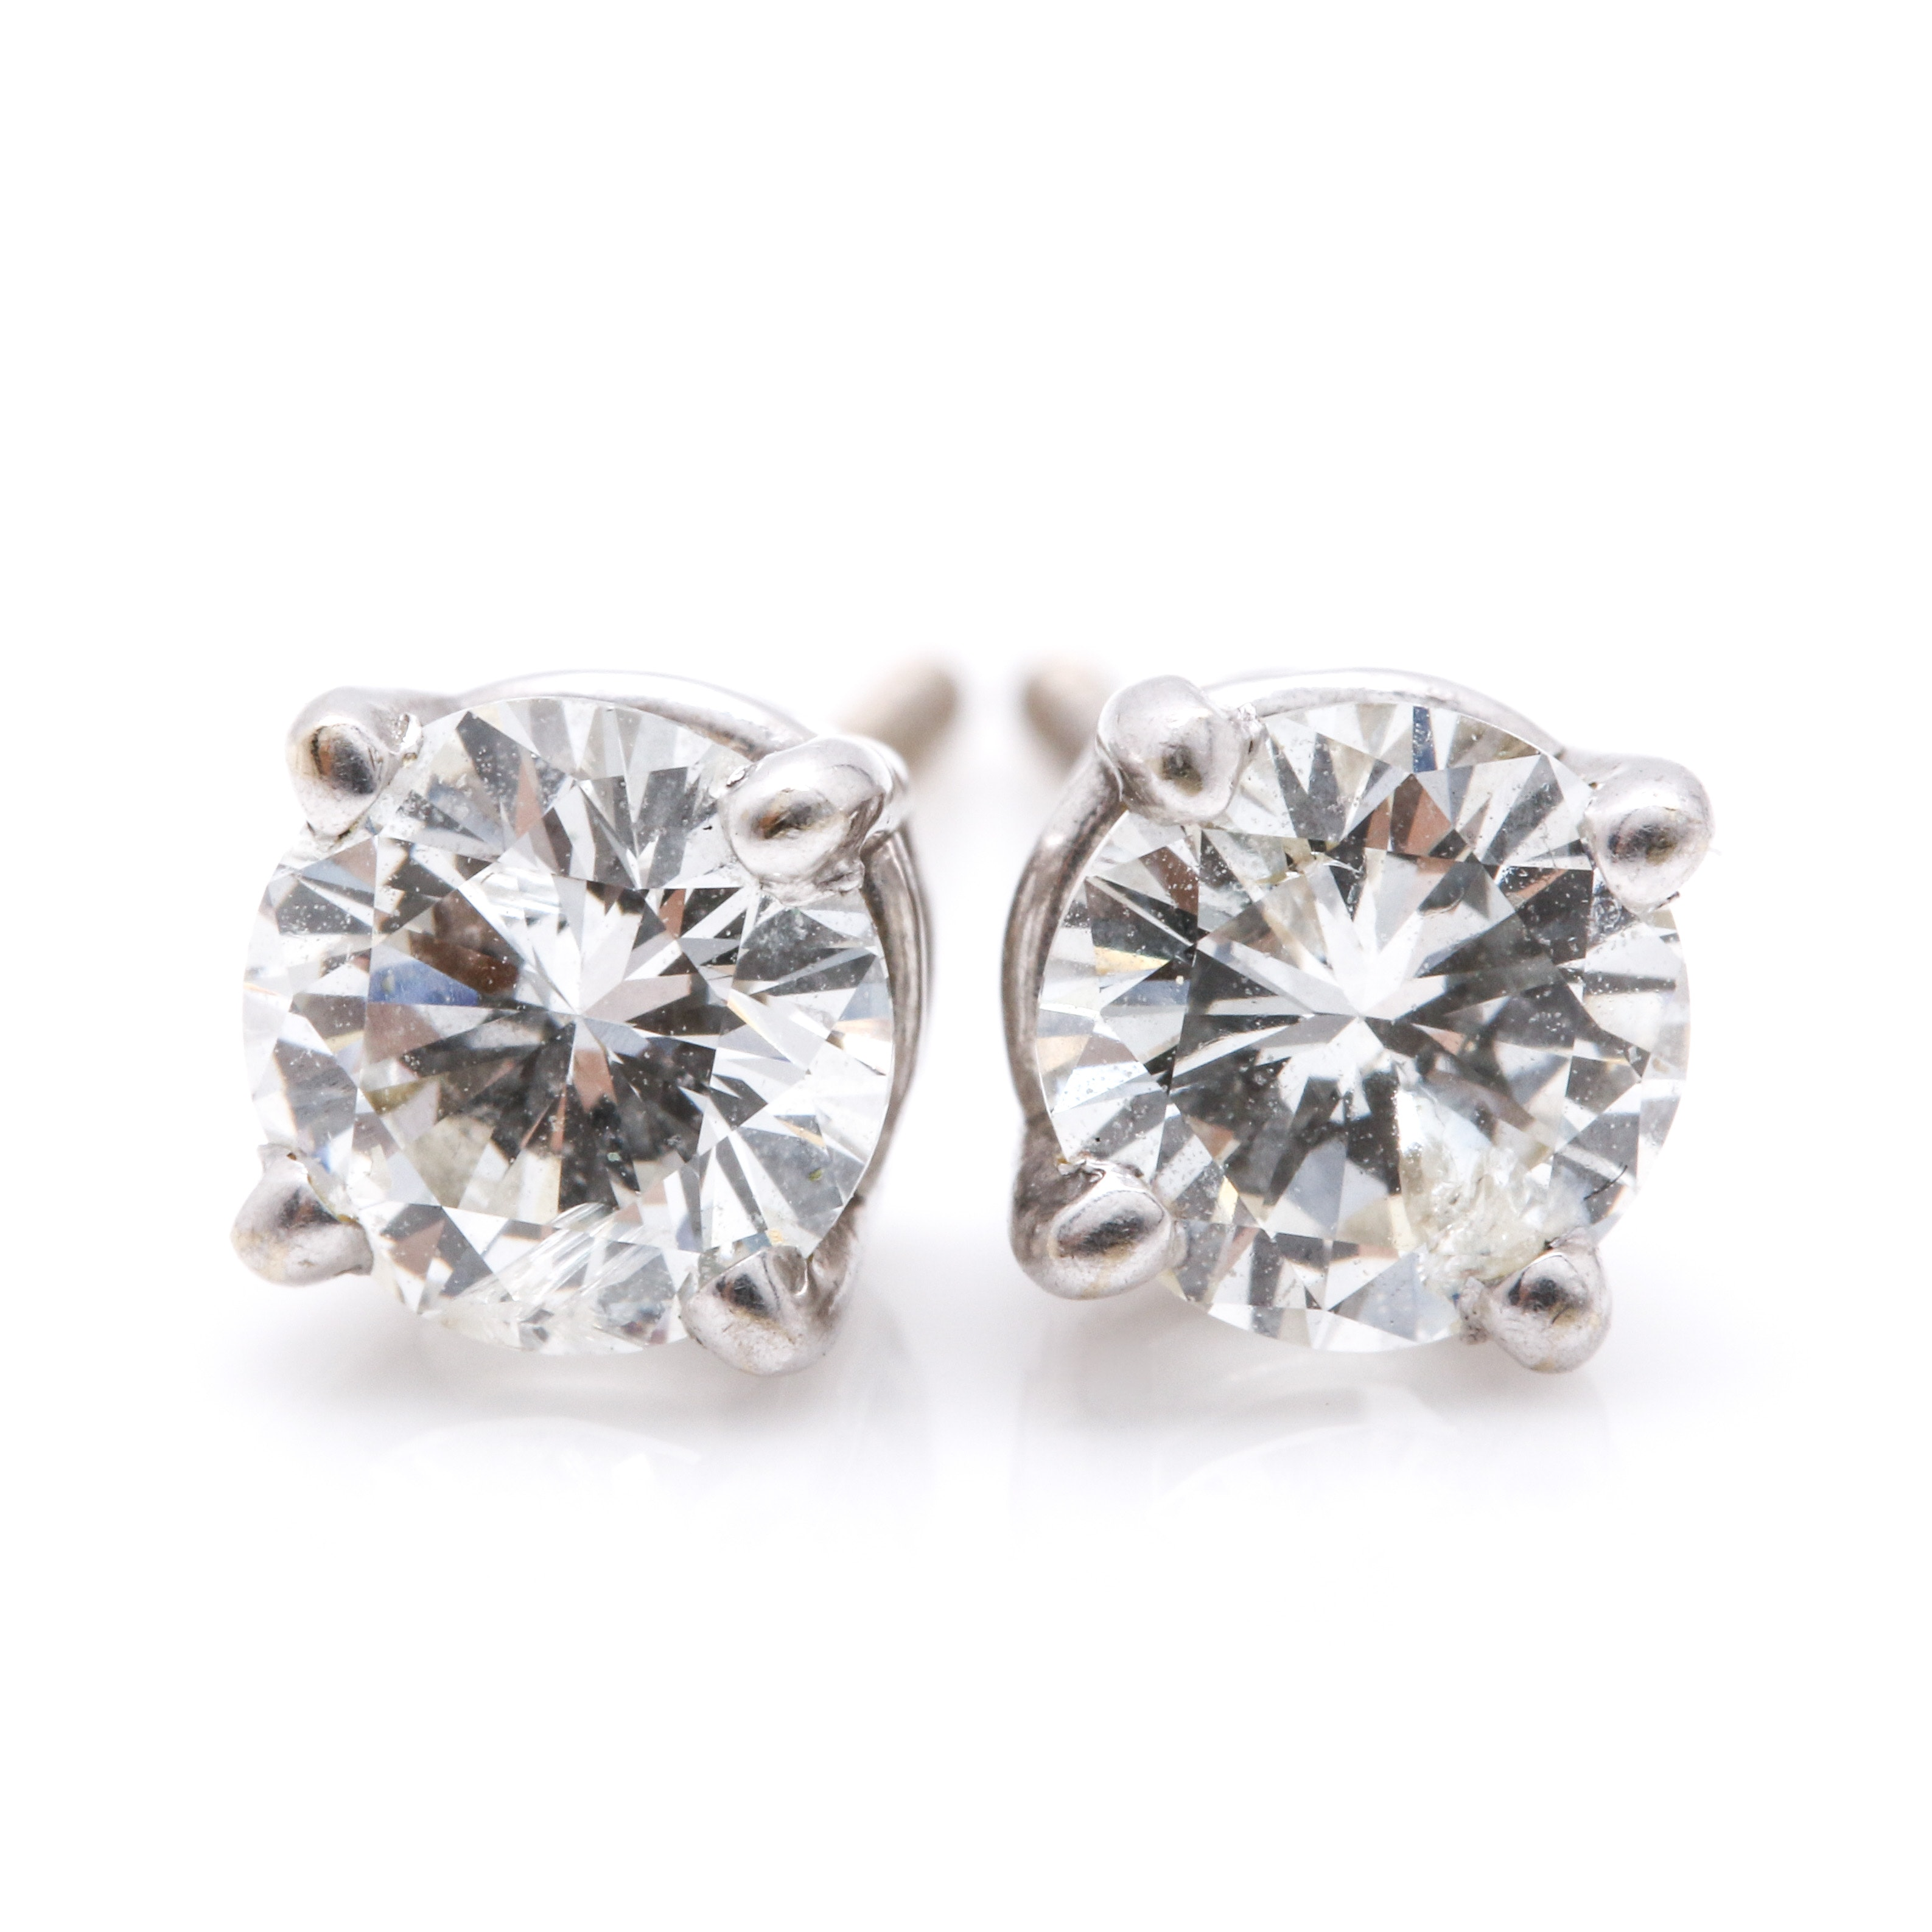 14K White Gold 1.10 CTW Diamond Stud Earrings